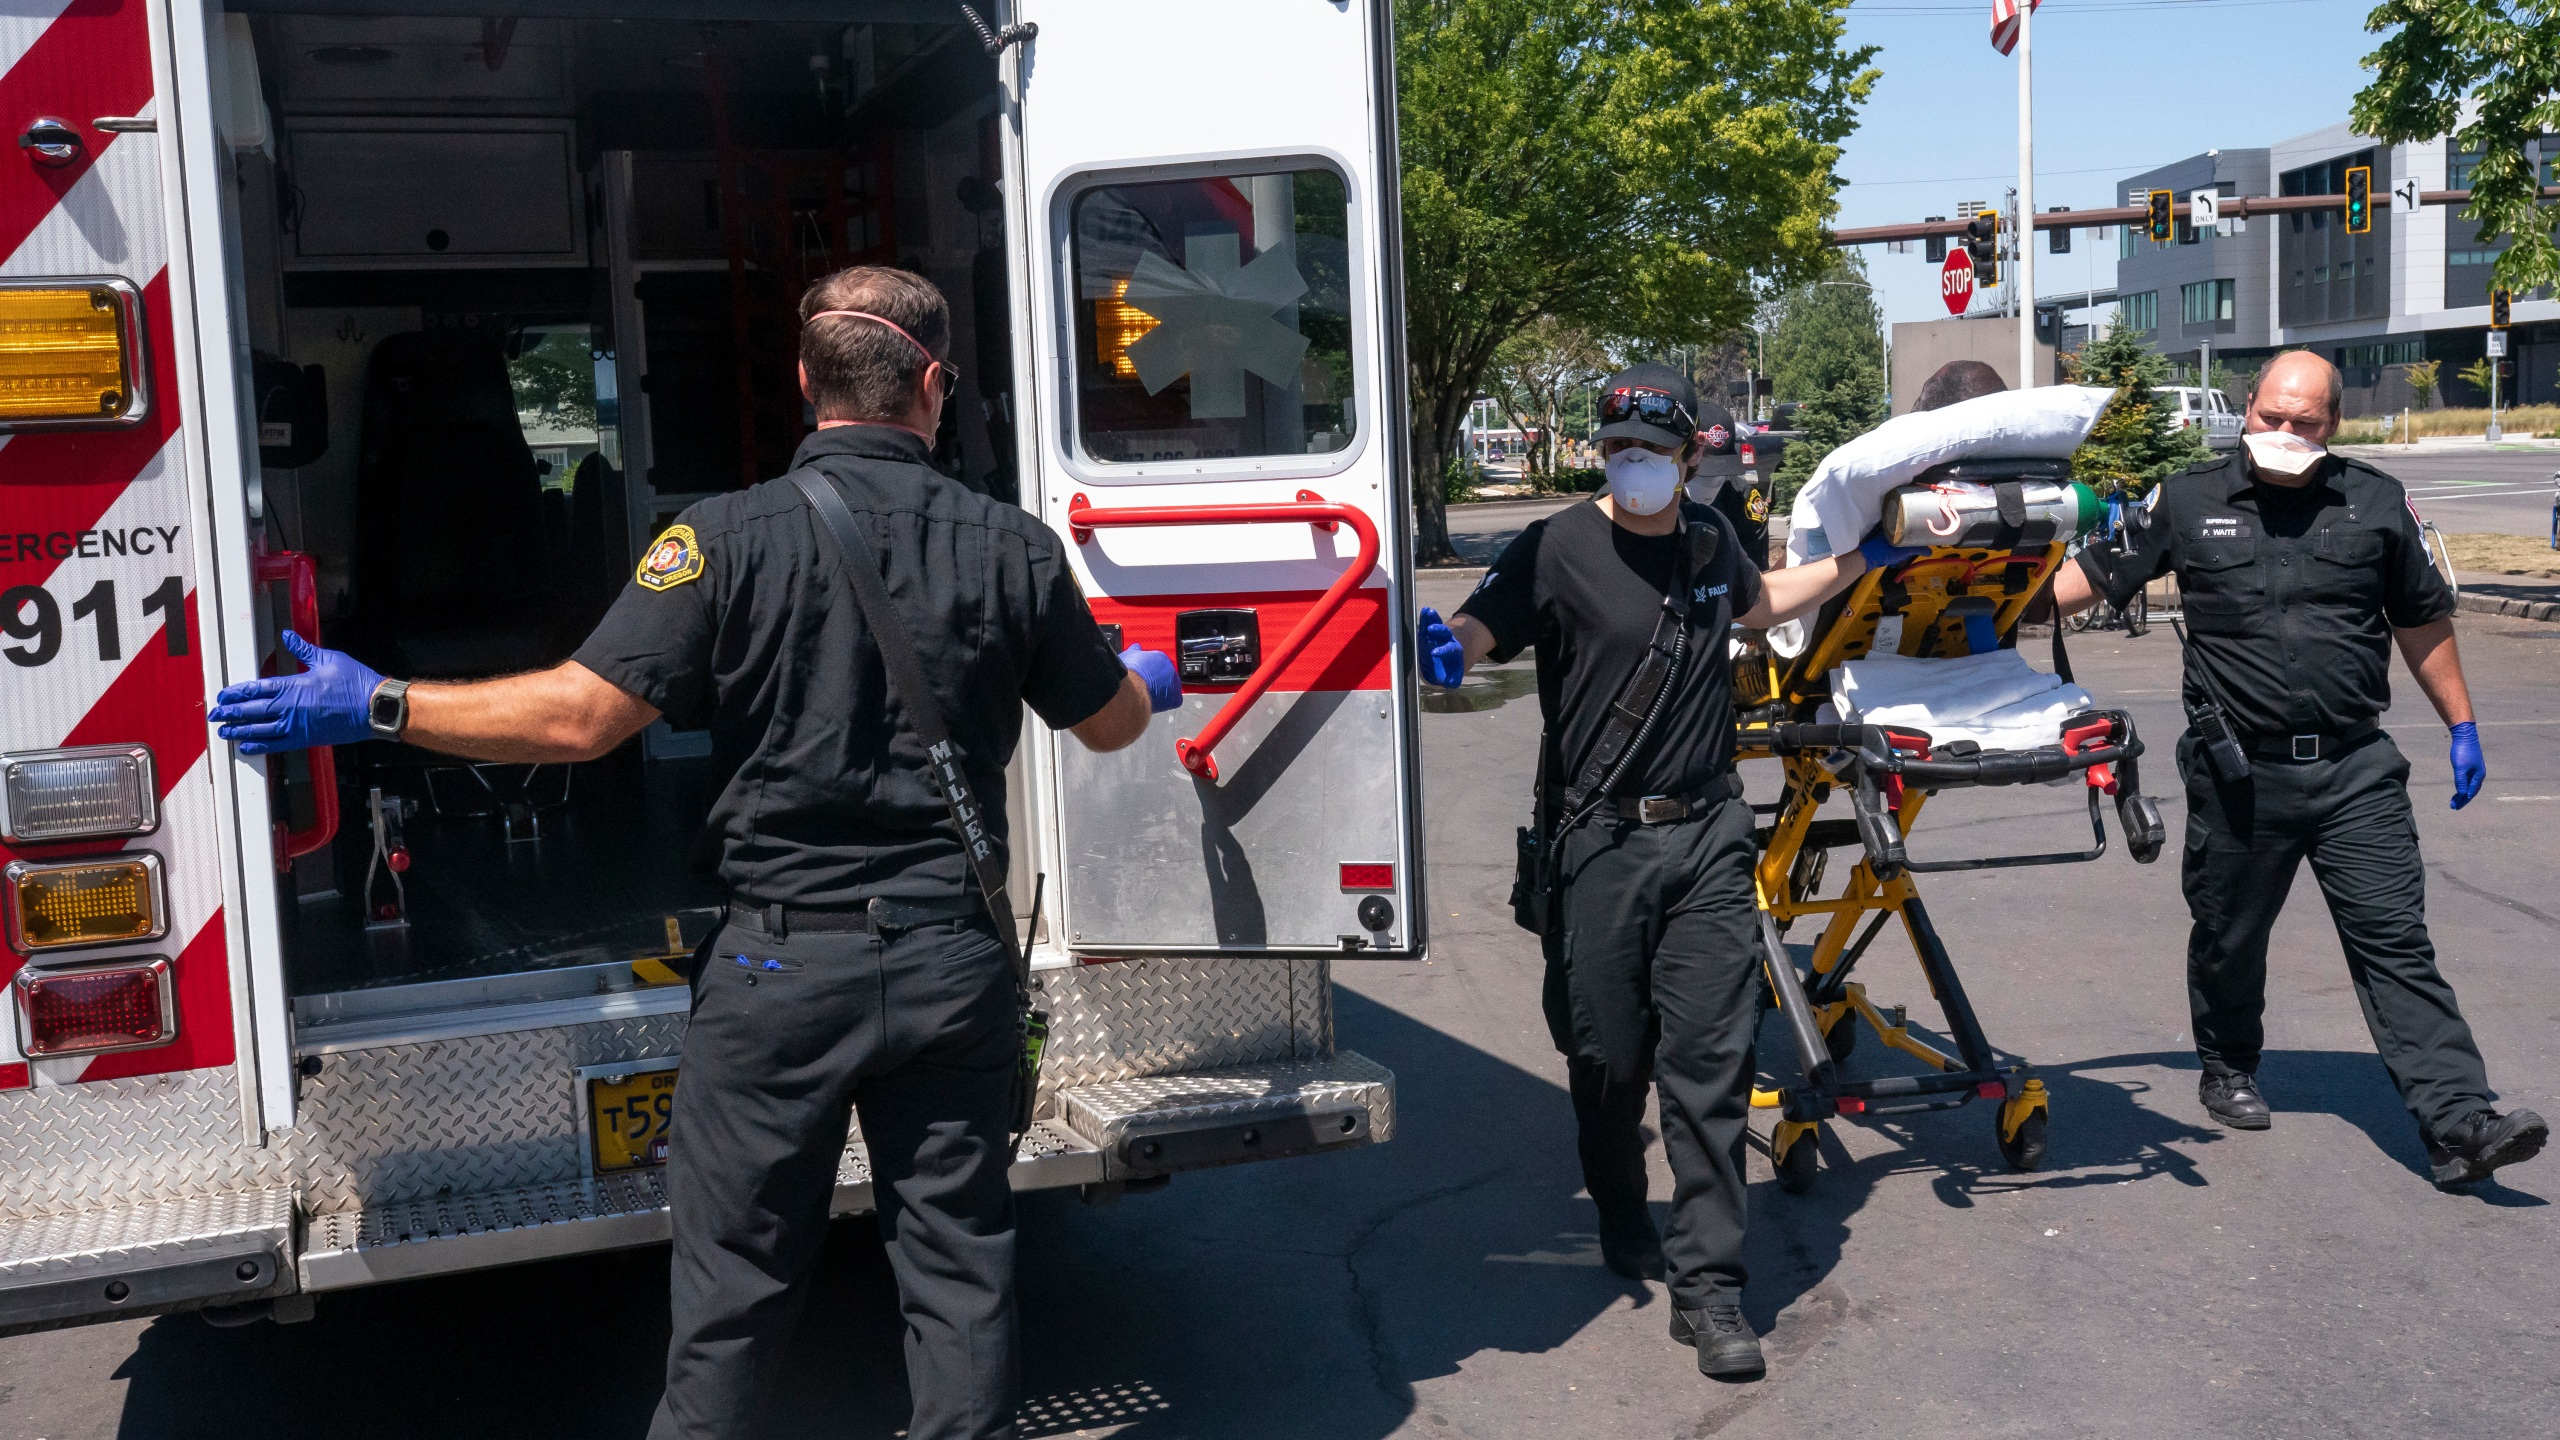 Salem Fire Department paramedics and employees of Falck Northwest ambulances respond to a heat exposure call during a heat wave, Saturday, June 26, 2021, in Salem, Ore. (AP Photo/Nathan Howard)